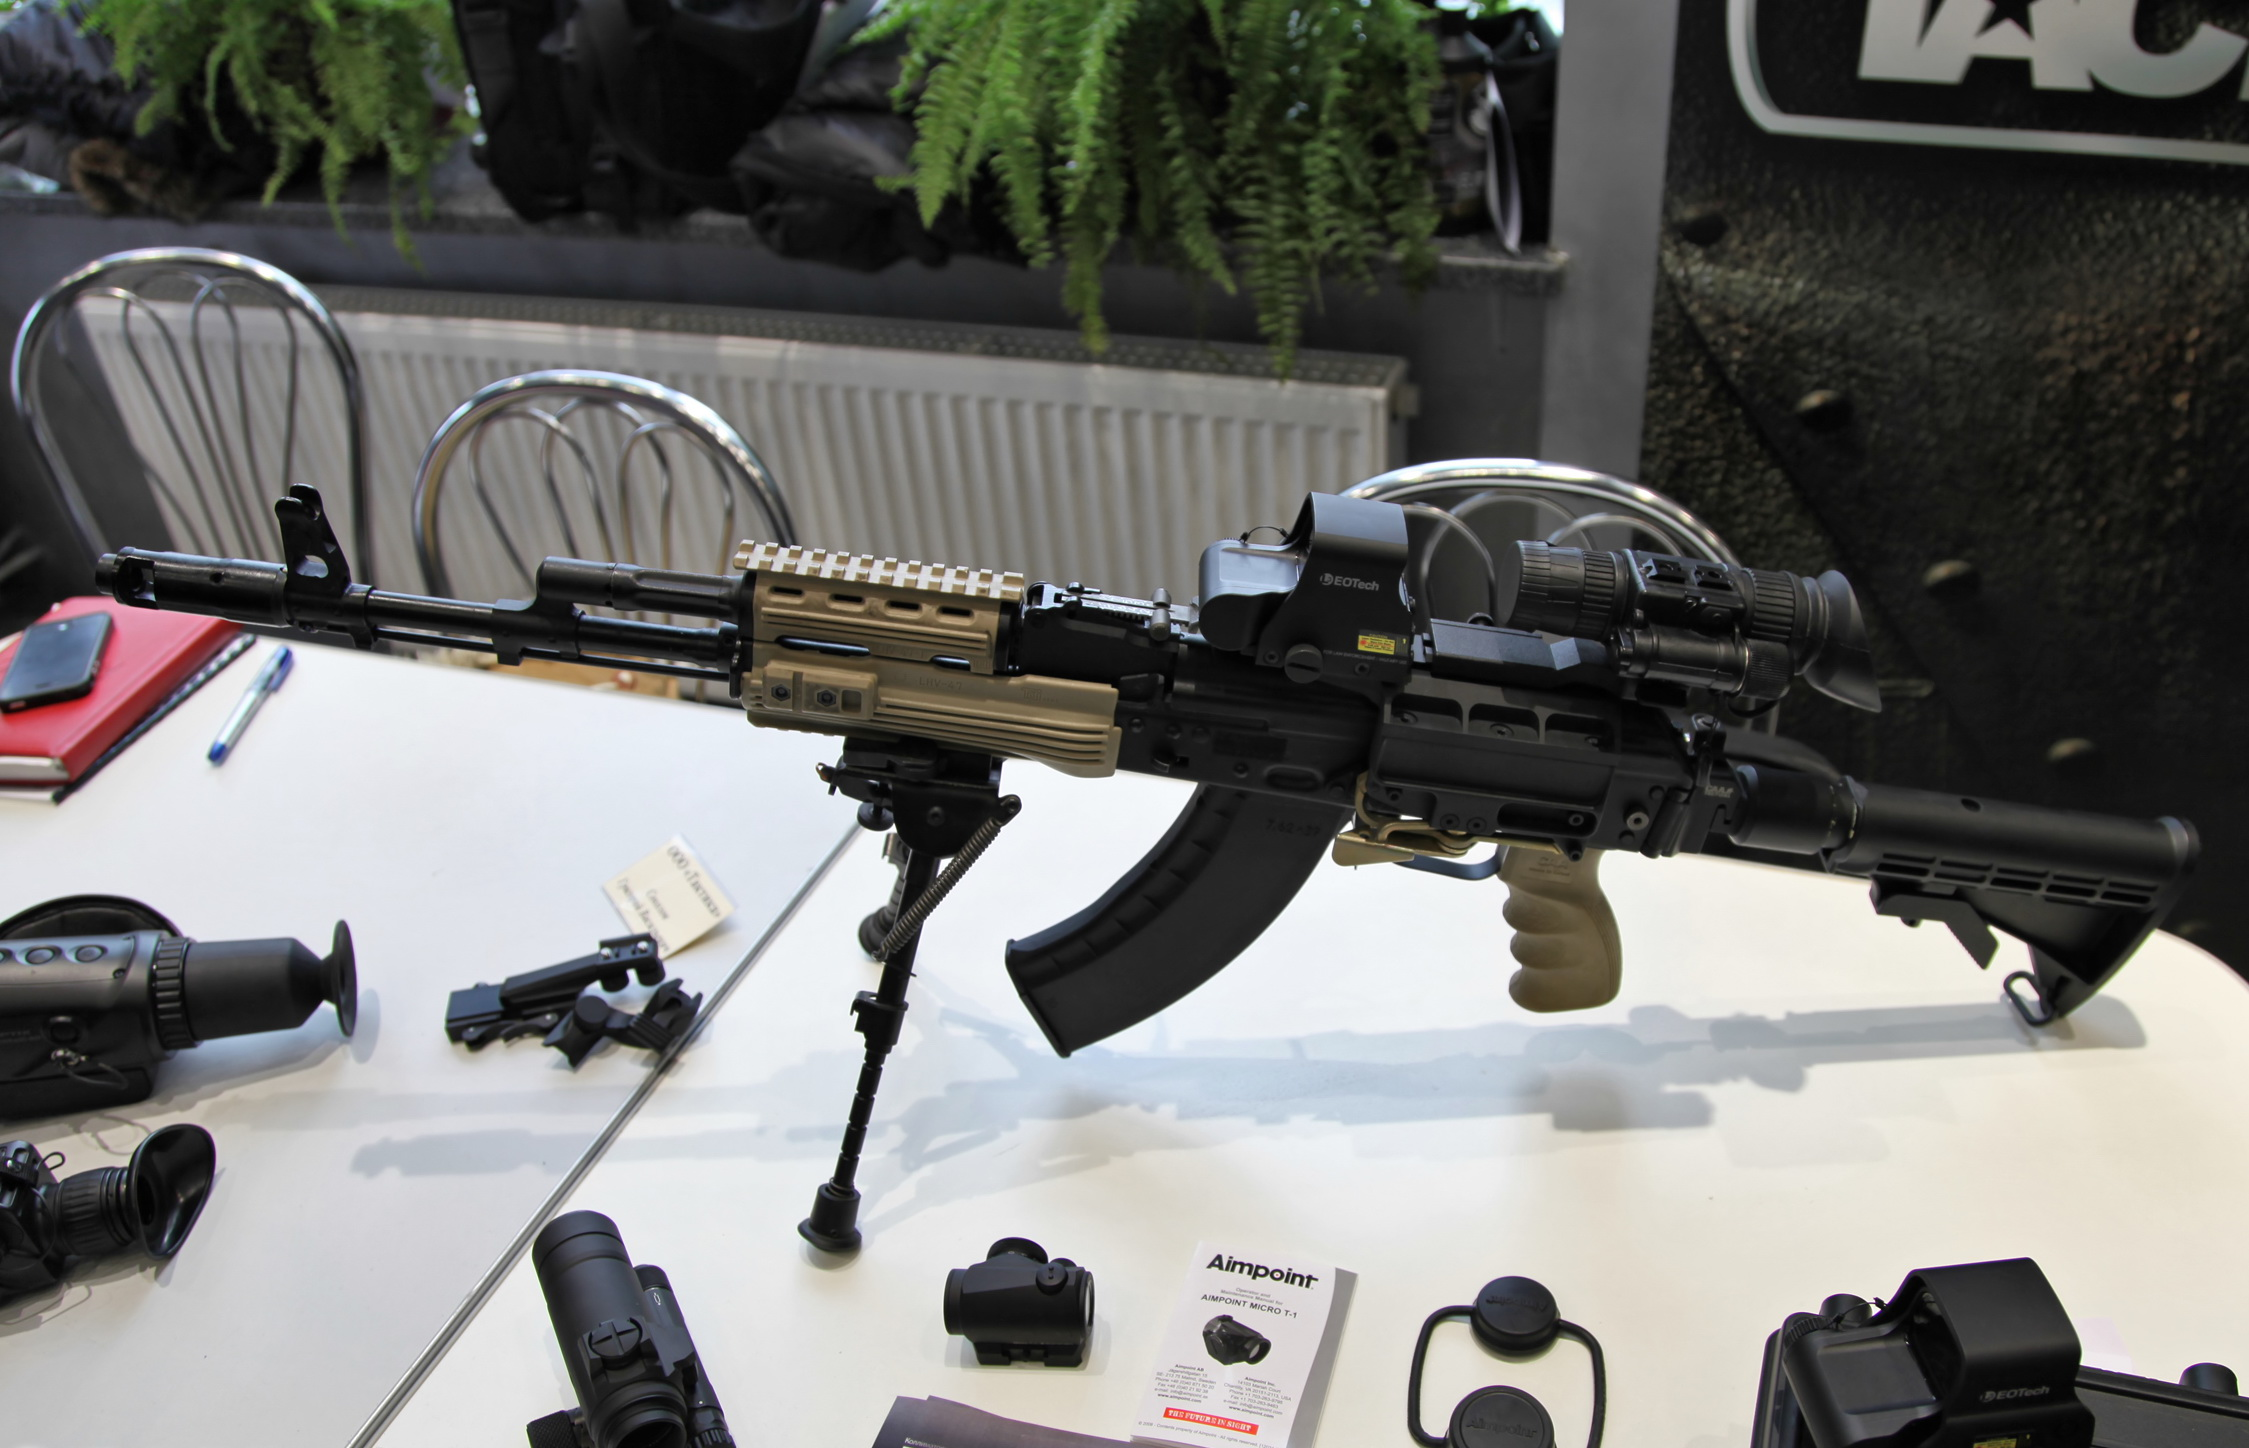 4 Reasons Why You Should Acquire Arms & Equipment from a Licensed Dealer